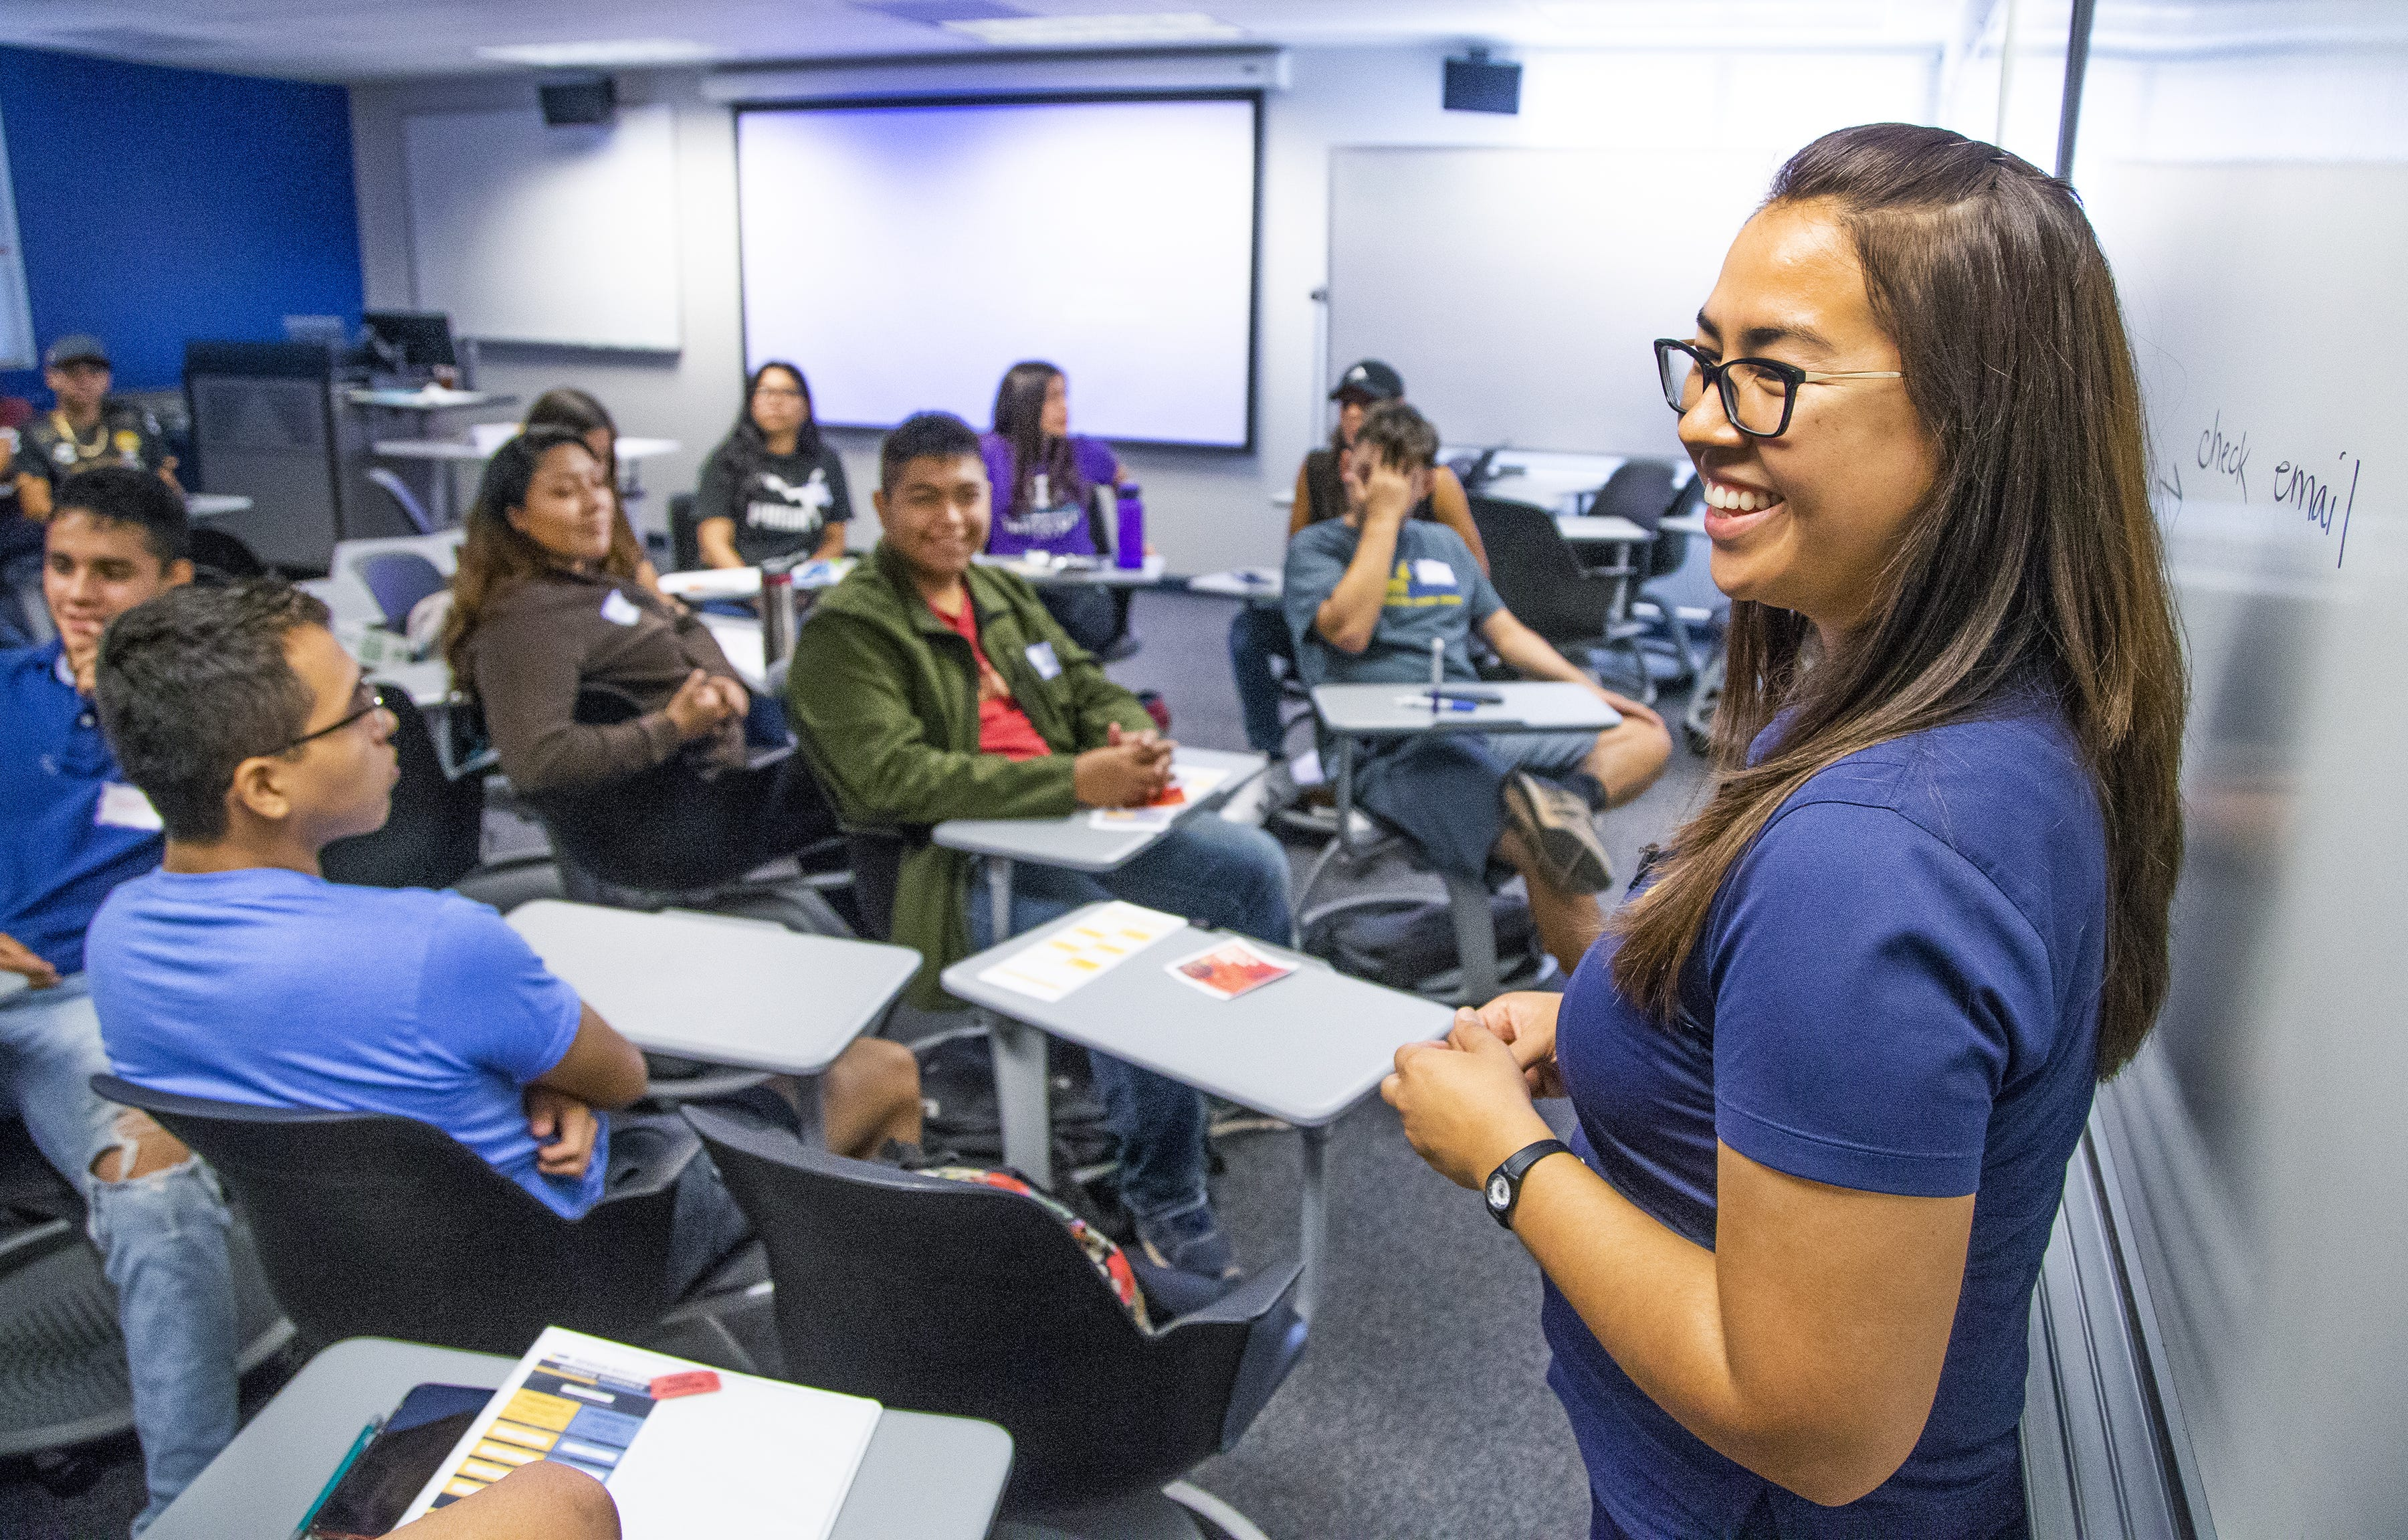 Jessica Solis, senior coordinator for college success programs for the Be A Leader Foundation, speaks to high school students at the college prep boot camp held at Phoenix College, Thursday, July 18, 2019.